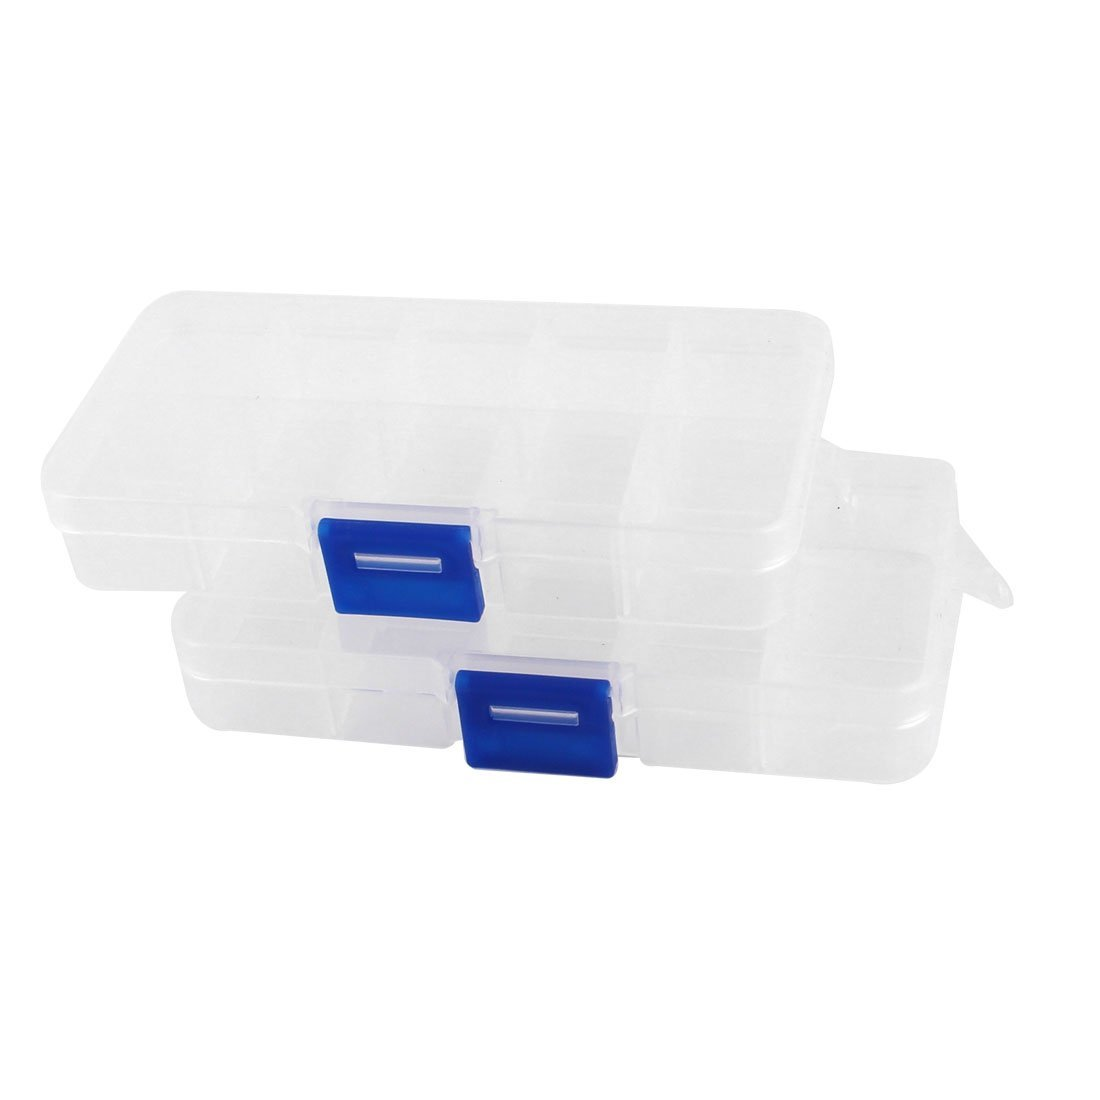 DHDL-2pcs Plastic 10 Compartments Electronic Components Storage Box Case(China (Mainland))